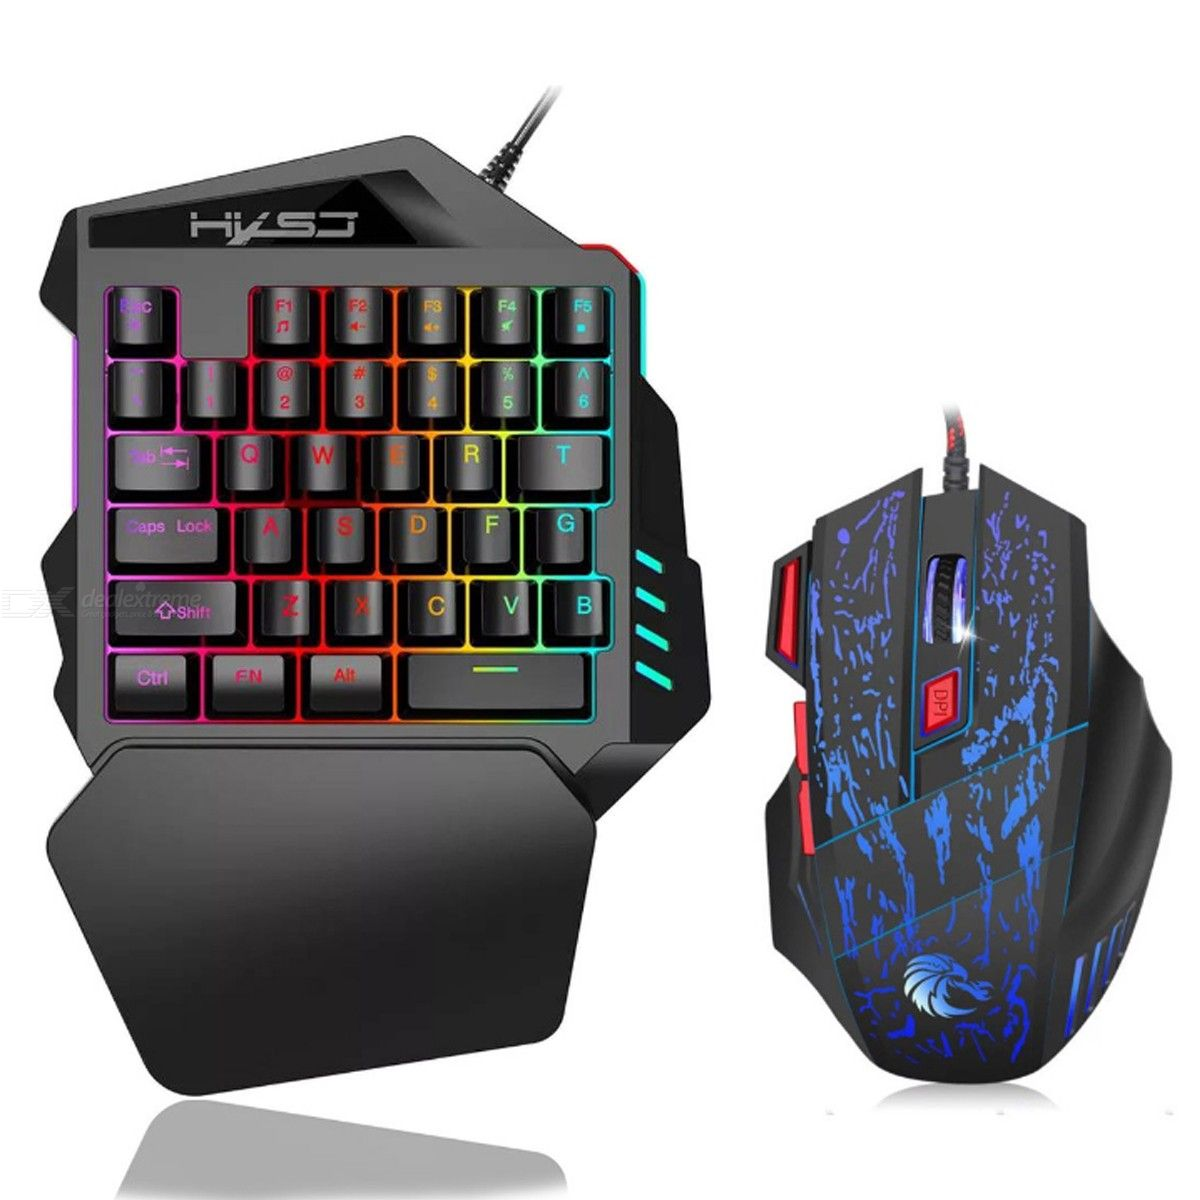 V100 USB 2.0 One-Handed Wired Keyboard, Left Hand Mini Portable 35-Key Gaming Mouse and Keyboard Combo